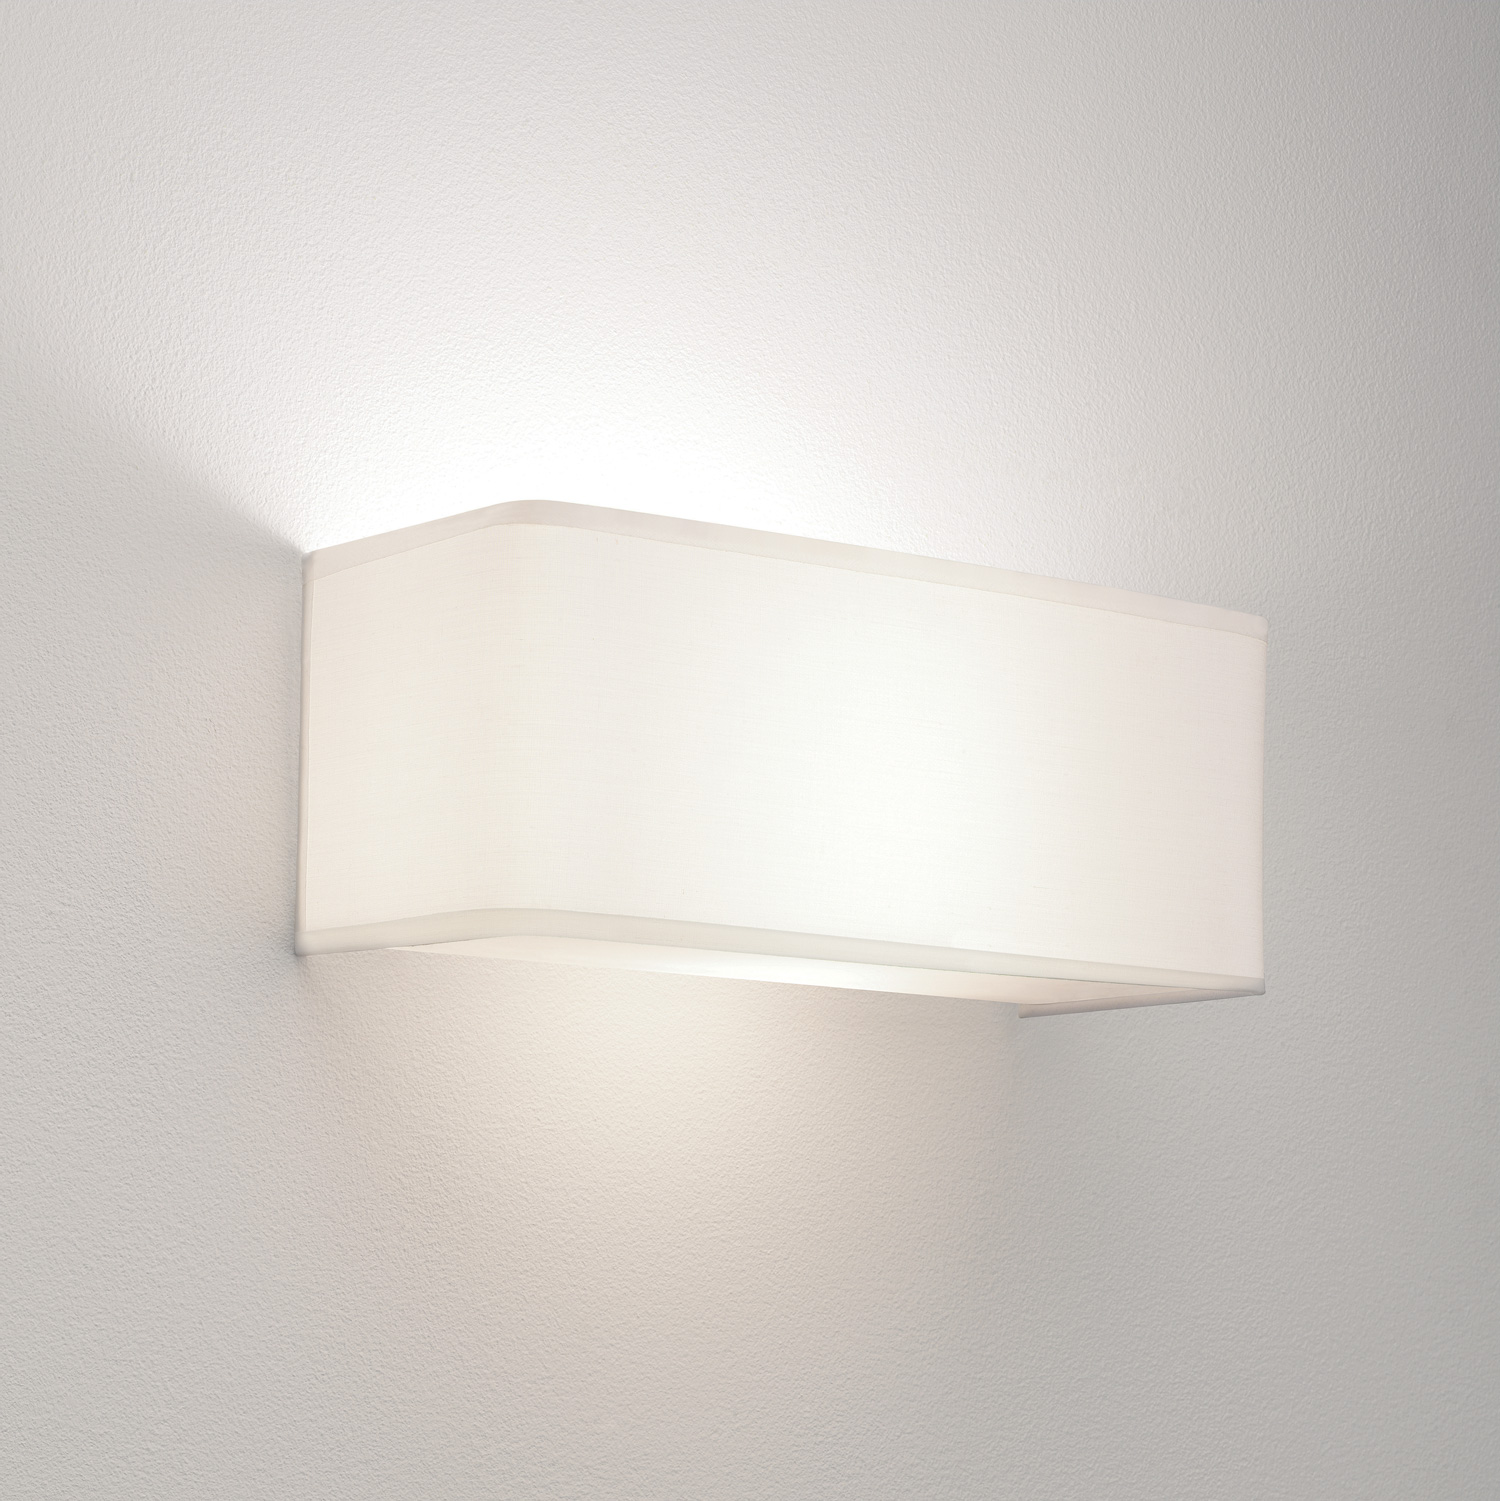 Modern Fabric Wall Lights : Astro Ashino Wide 0767 dimmable rectangular fabric wall light 60W E27 lamp IP20 eBay